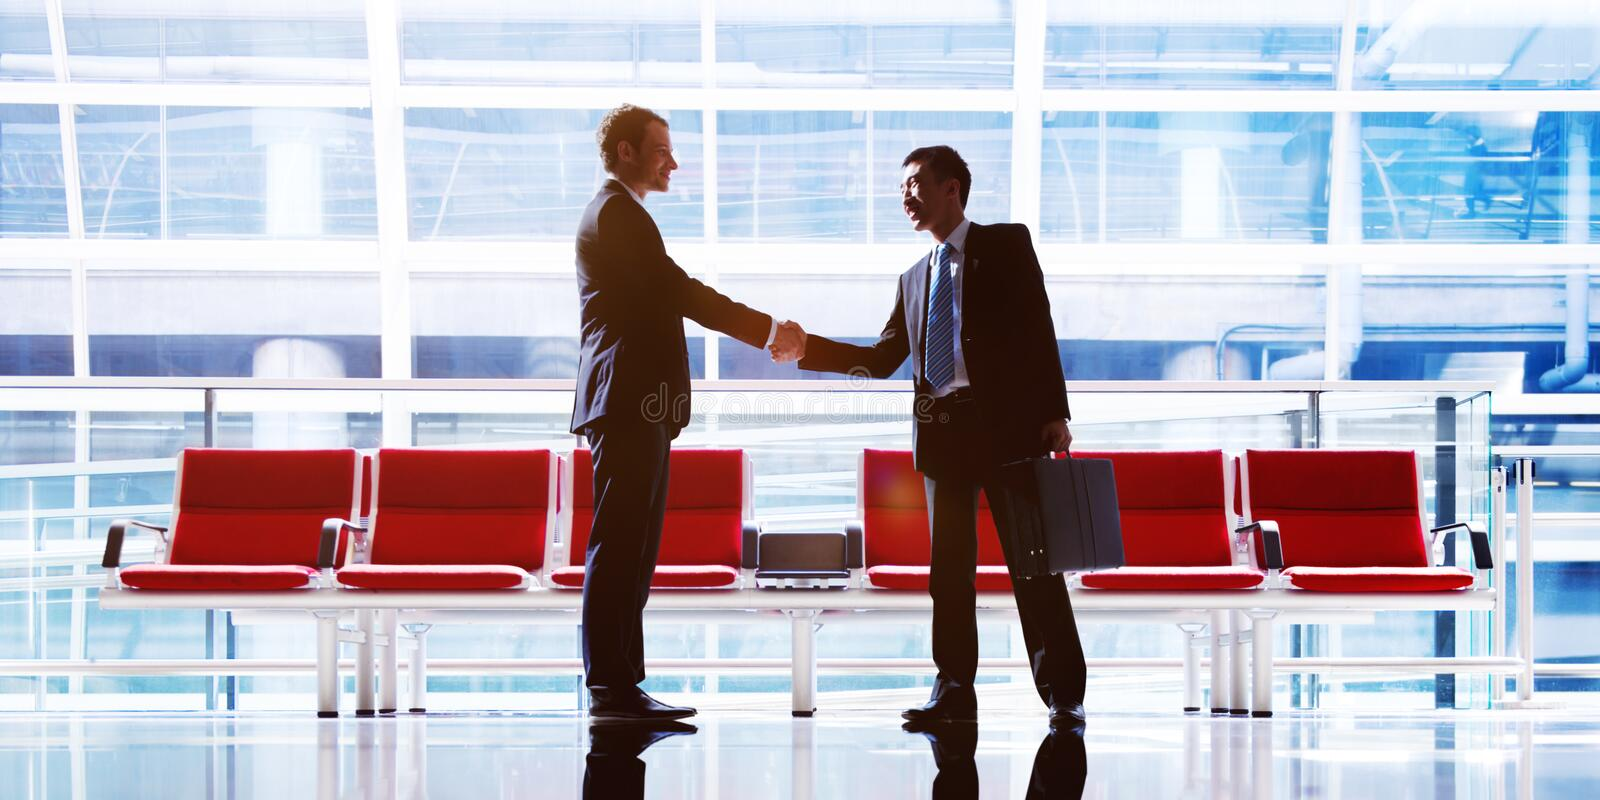 Businessmen Talking Business in the Airport Concept.  royalty free stock photography